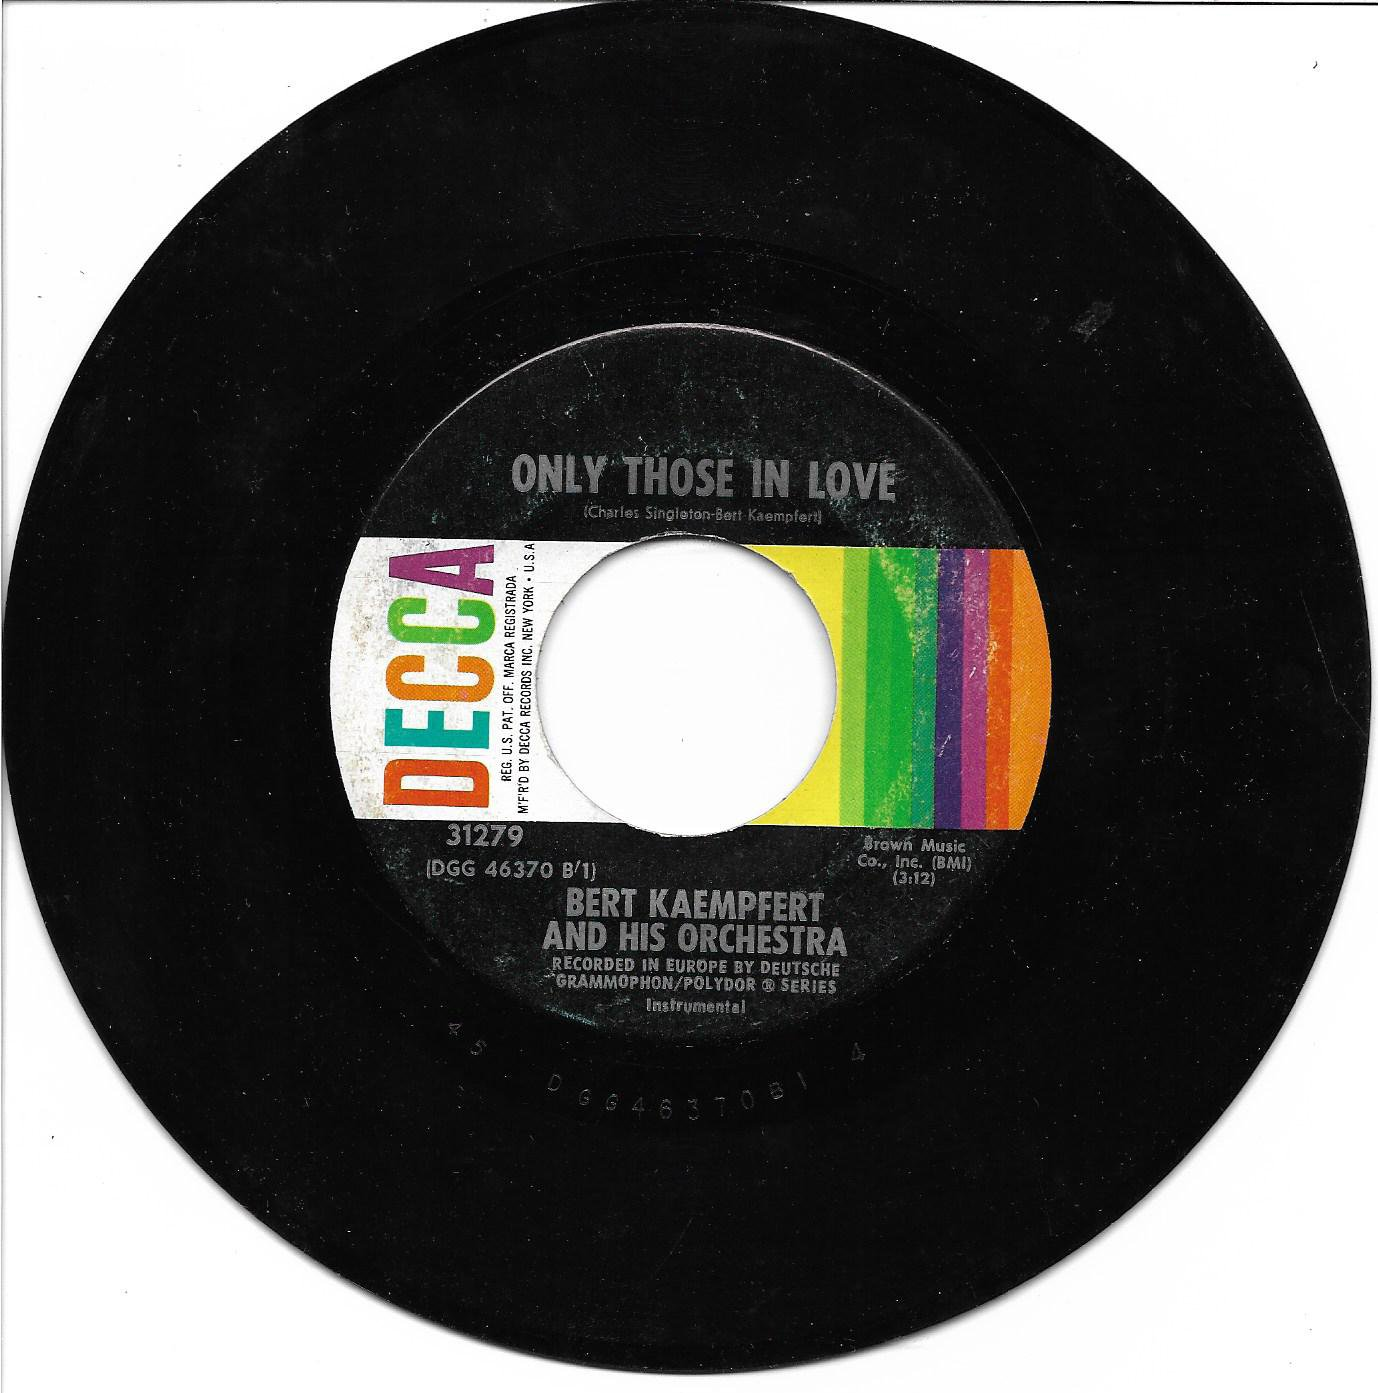 """Bert Kaempfert: """"Only Those In Love"""" / """"Now And Forever"""" - '61 hit - plays well!"""